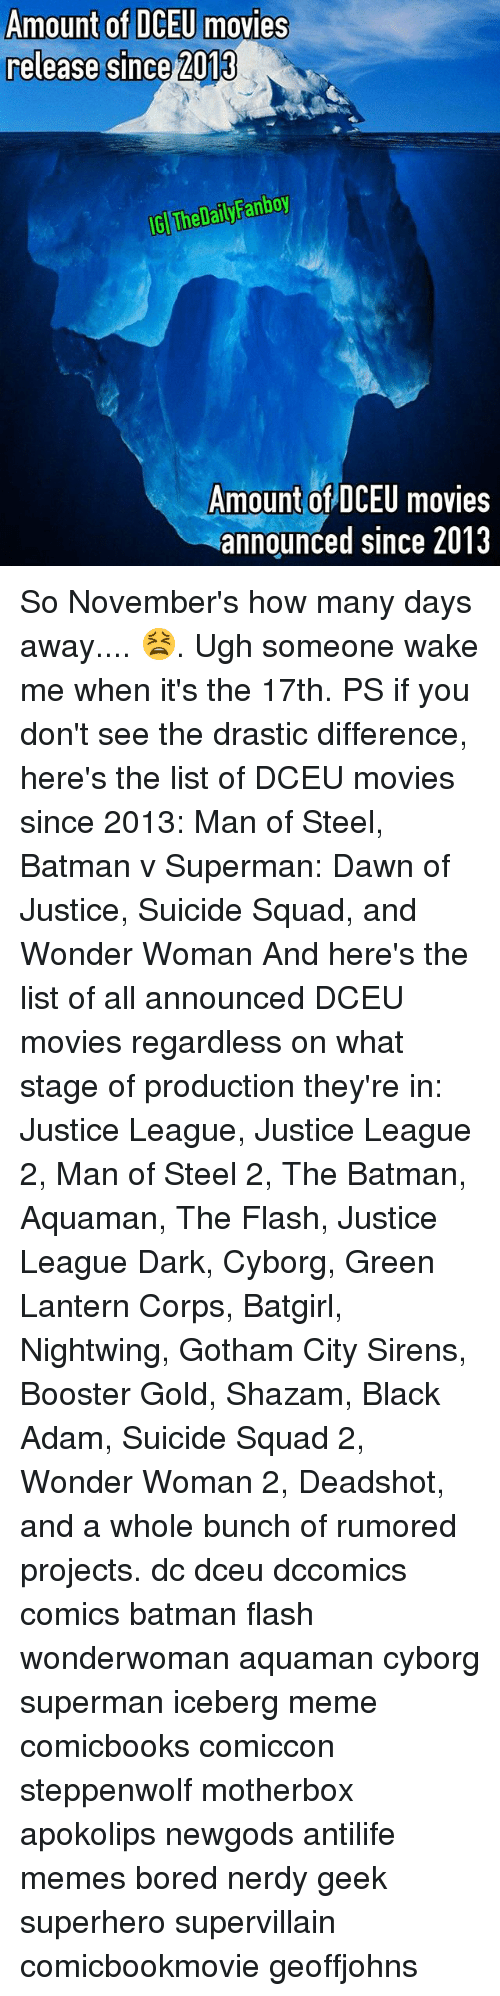 Corpsing: Amount of DCEU movies  release since 2013  GI The DailyFanboy  Amount of DCEU movies  announced since 2013 So November's how many days away.... 😫. Ugh someone wake me when it's the 17th. PS if you don't see the drastic difference, here's the list of DCEU movies since 2013: Man of Steel, Batman v Superman: Dawn of Justice, Suicide Squad, and Wonder Woman And here's the list of all announced DCEU movies regardless on what stage of production they're in: Justice League, Justice League 2, Man of Steel 2, The Batman, Aquaman, The Flash, Justice League Dark, Cyborg, Green Lantern Corps, Batgirl, Nightwing, Gotham City Sirens, Booster Gold, Shazam, Black Adam, Suicide Squad 2, Wonder Woman 2, Deadshot, and a whole bunch of rumored projects. dc dceu dccomics comics batman flash wonderwoman aquaman cyborg superman iceberg meme comicbooks comiccon steppenwolf motherbox apokolips newgods antilife memes bored nerdy geek superhero supervillain comicbookmovie geoffjohns